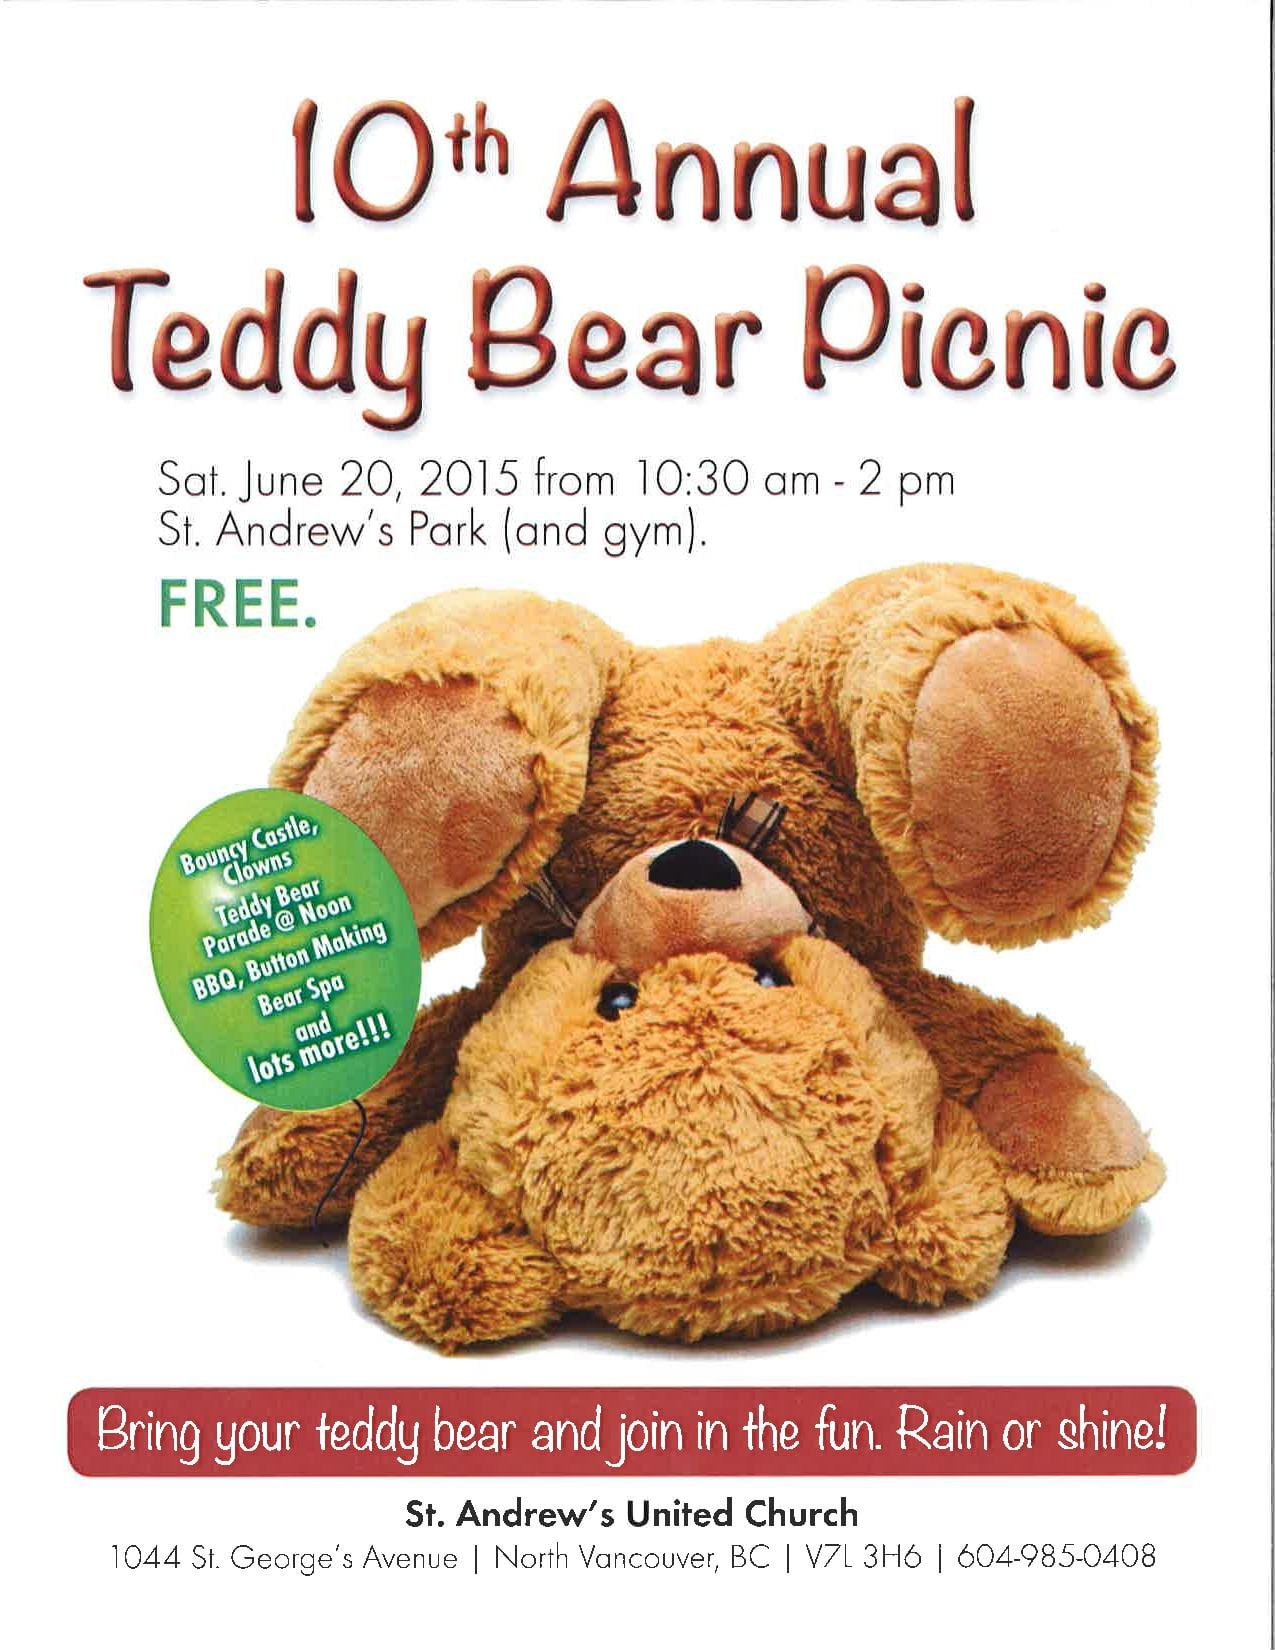 10th Annual Teddy Bear Picnic at St. Andrew's Park in North Vancouver